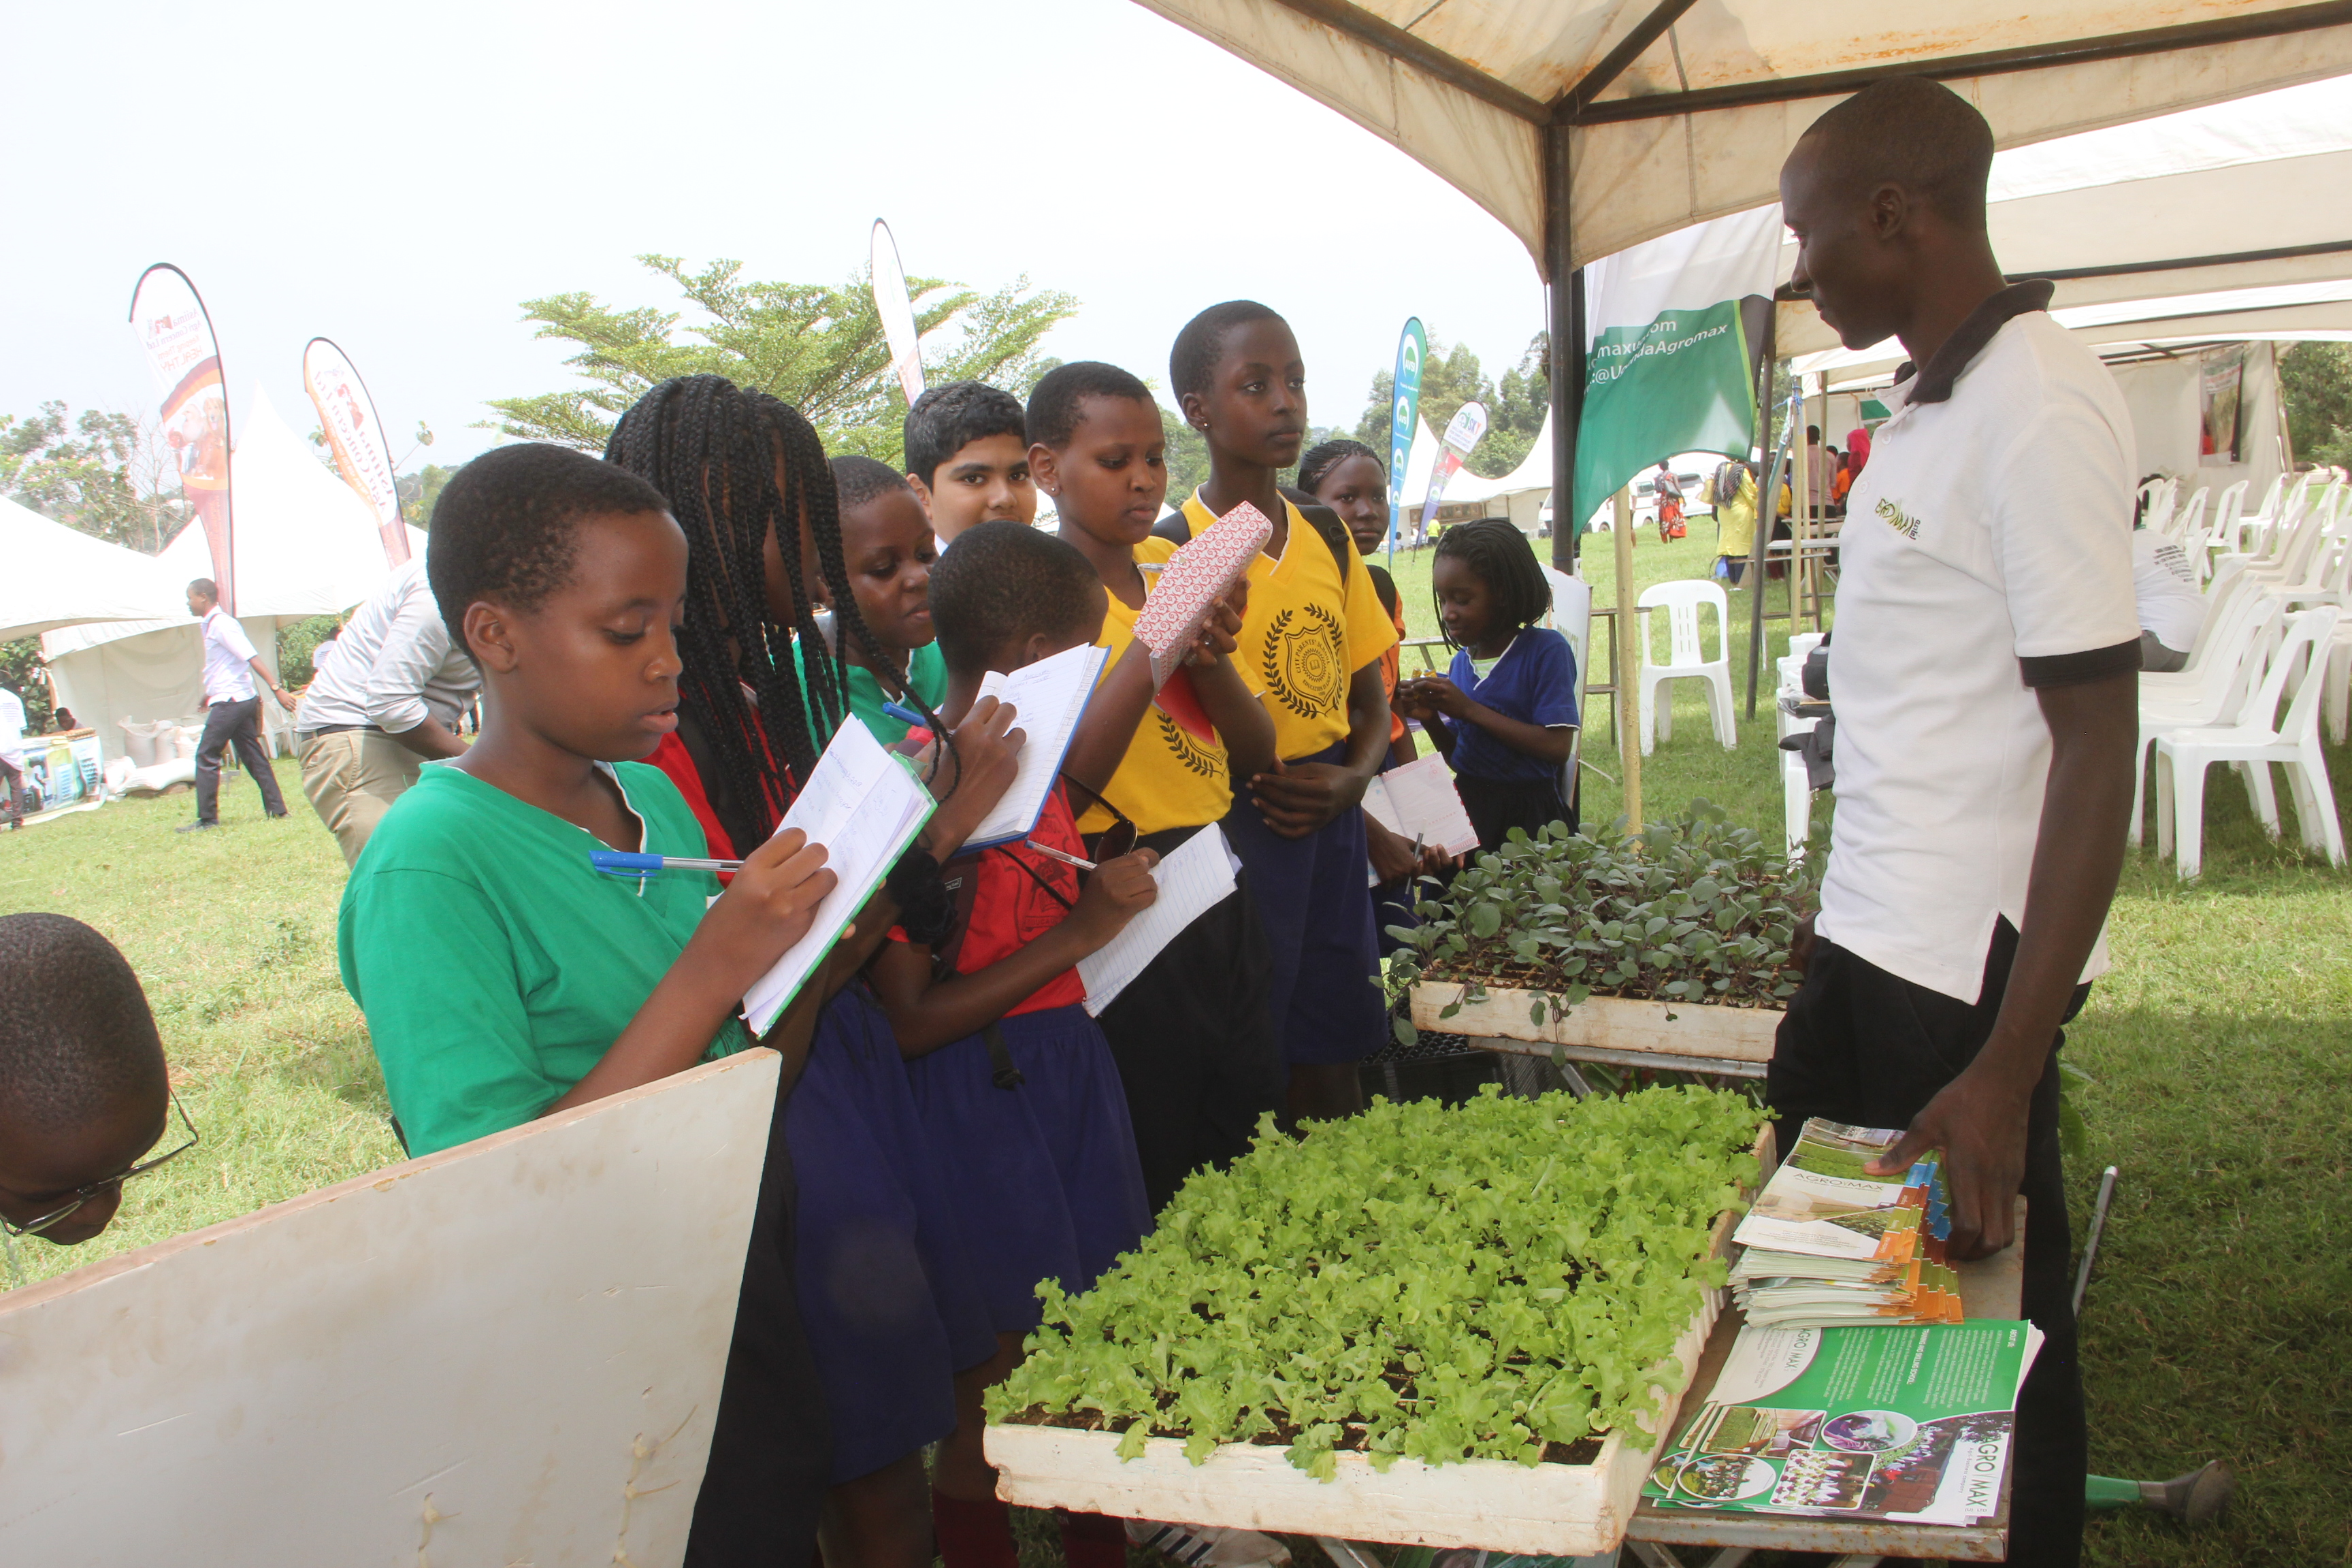 Gudie Leisure Farm, a city farm in Uganda, teaches small farmers to become agripreneurs.